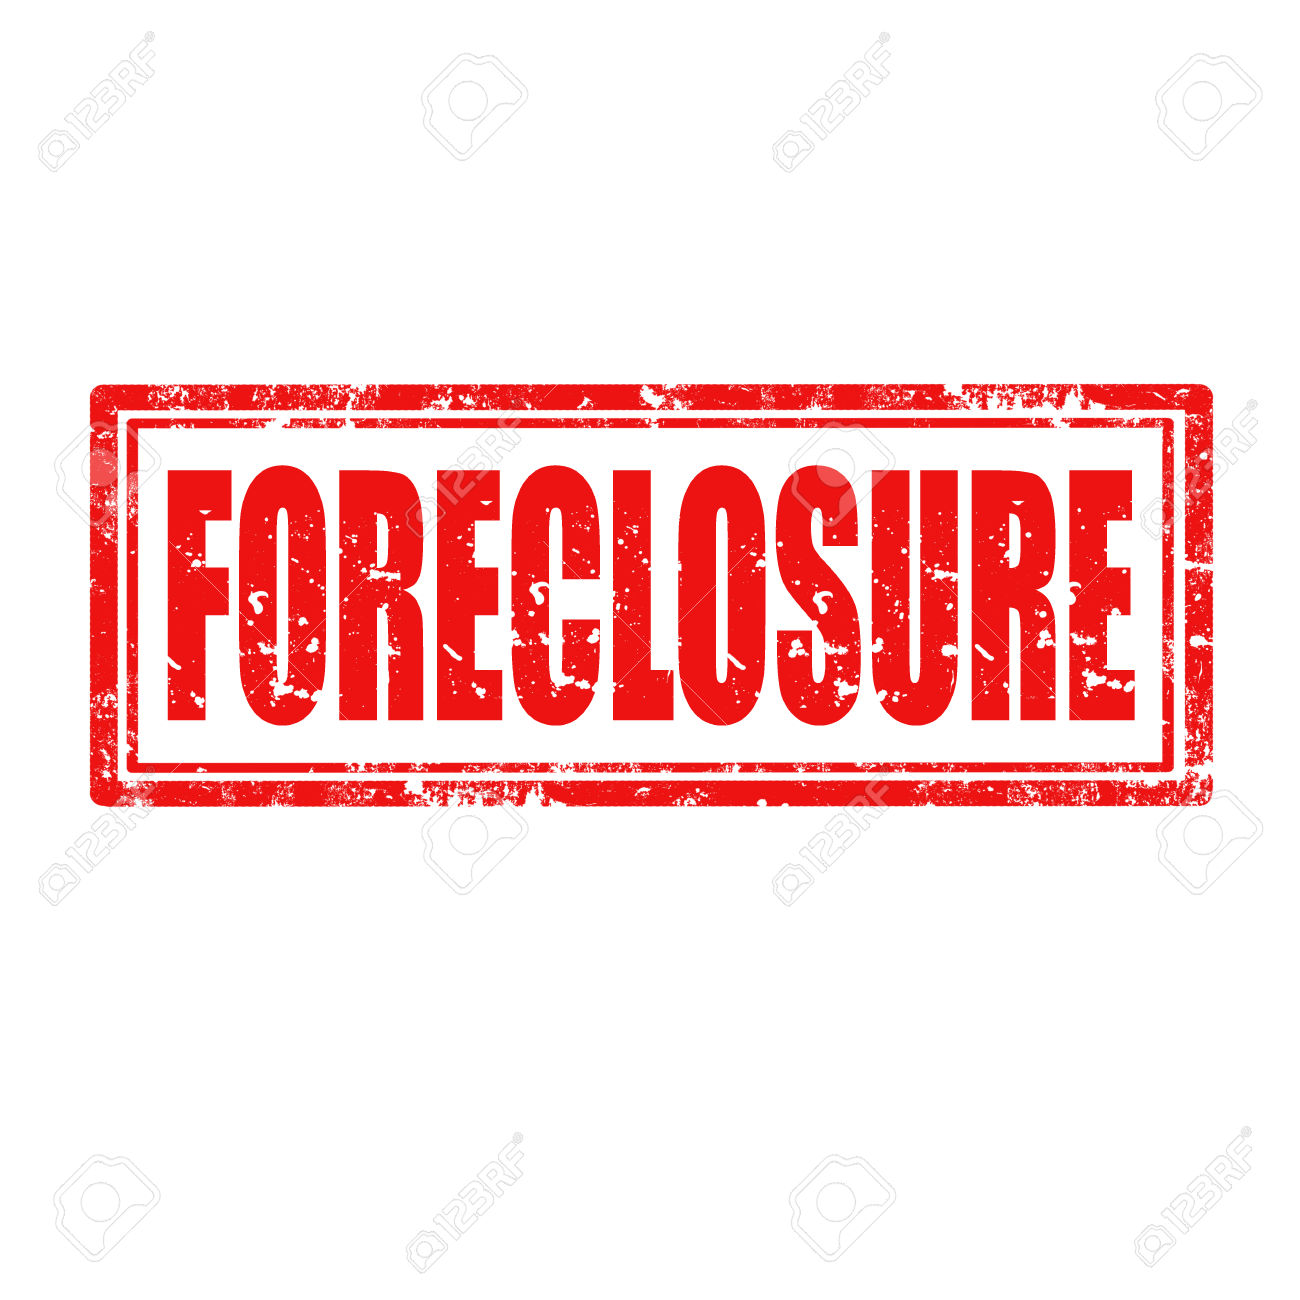 Foreclosures clipart.